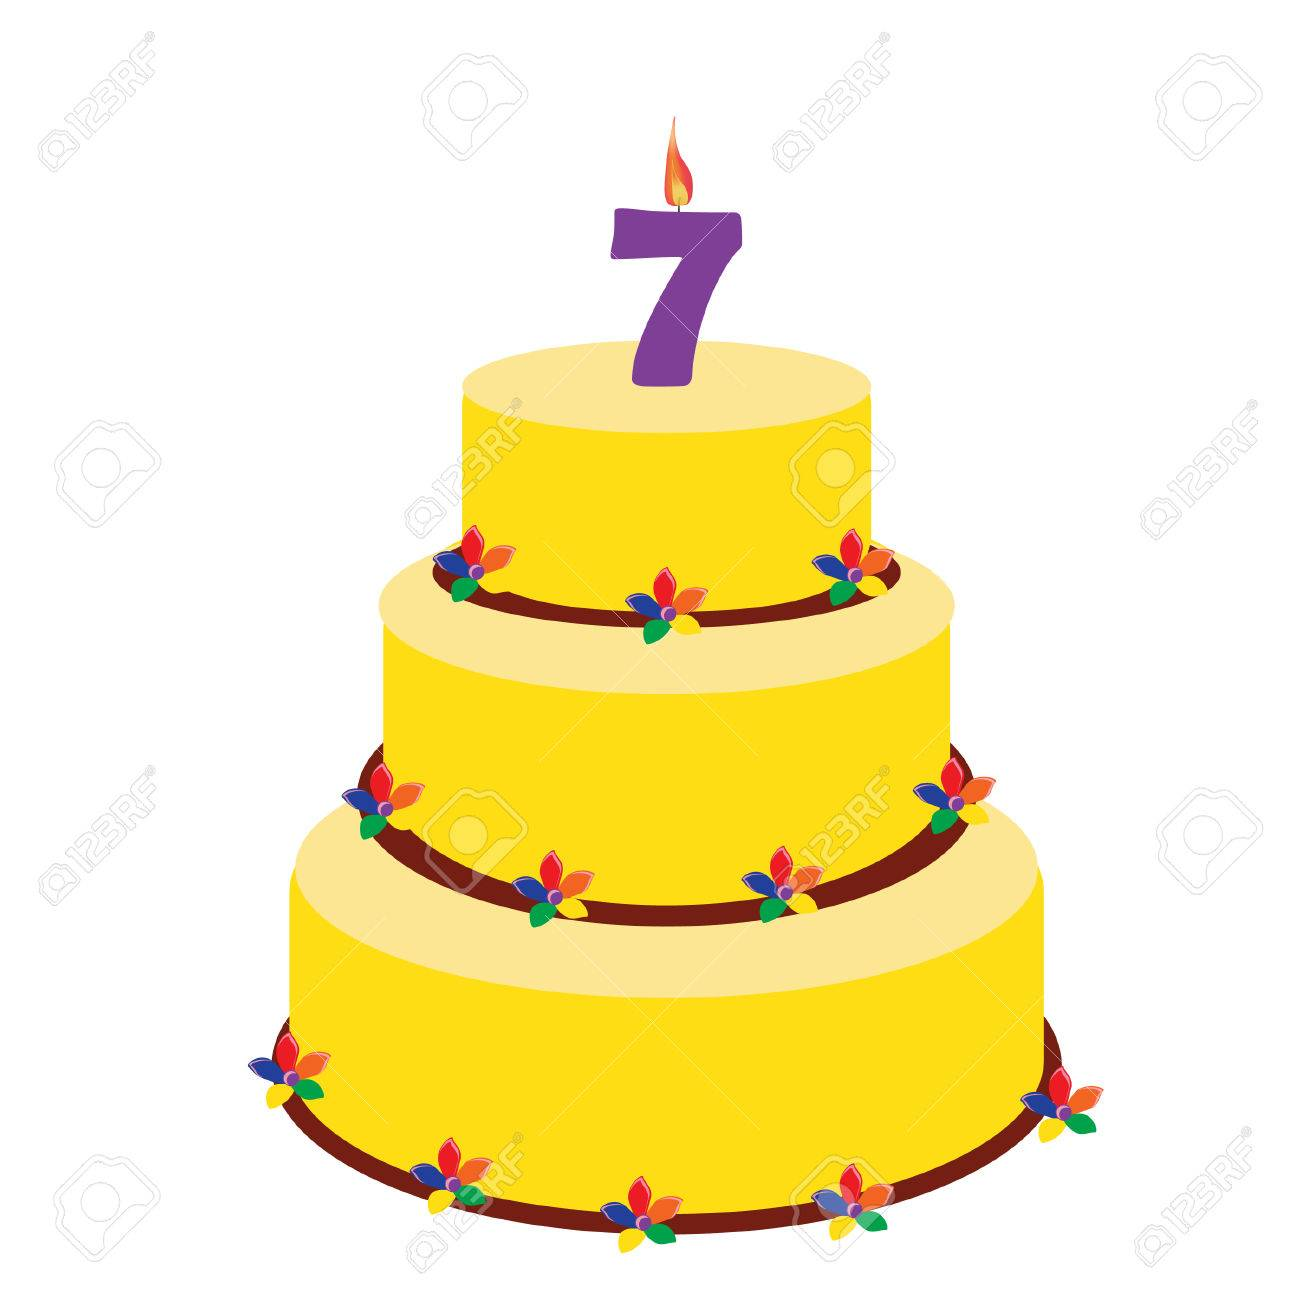 Birthday Cake With Candle Number Seven On Top Seventh Stock Photo